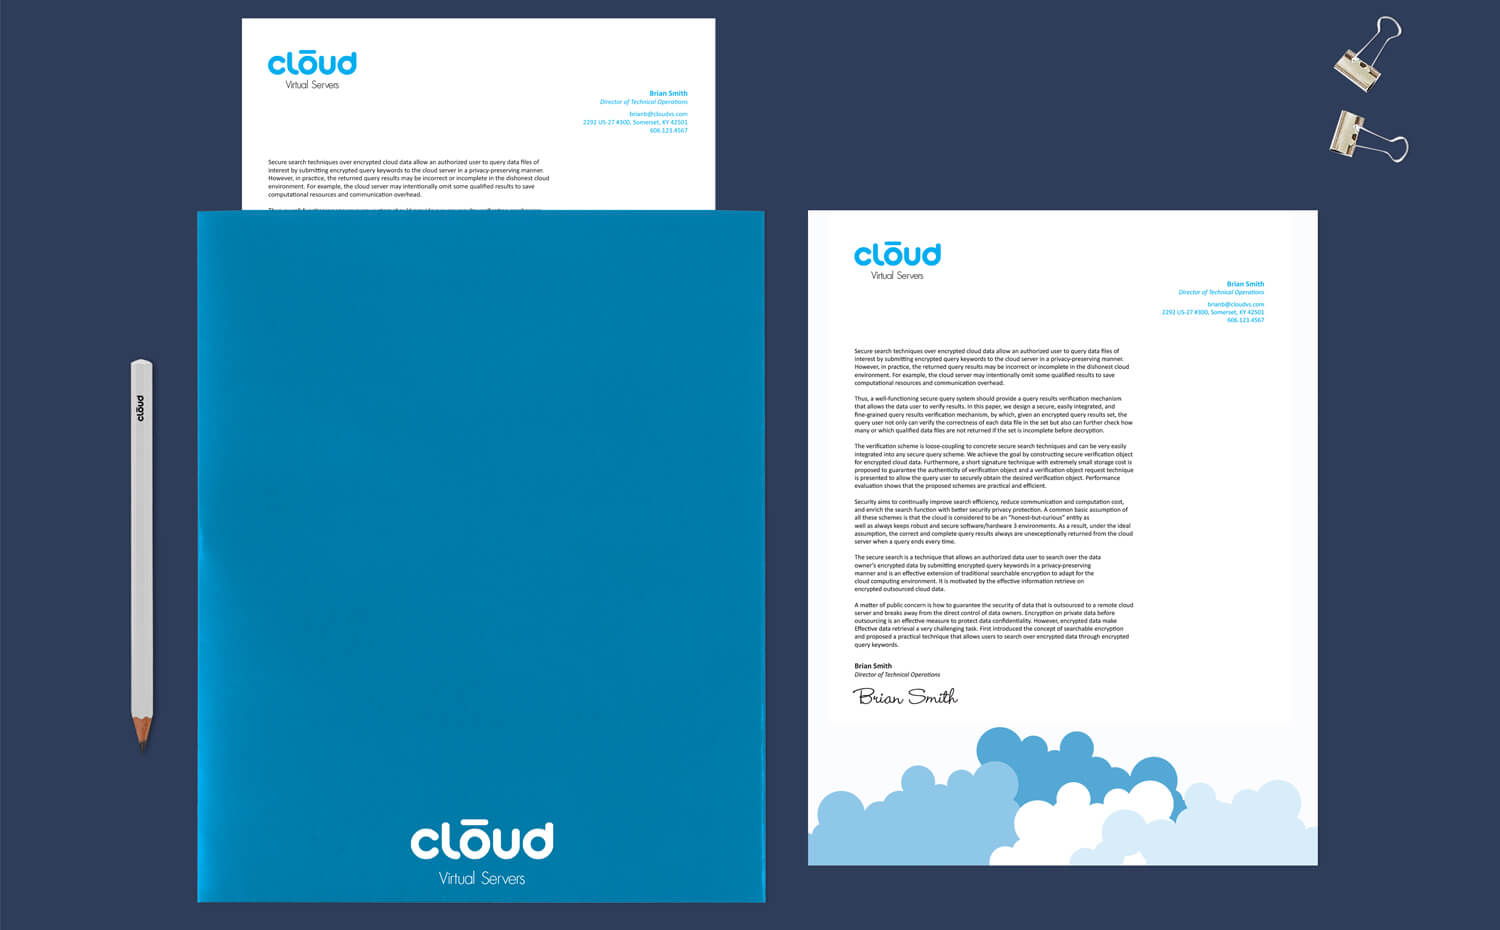 cloud virtual servers - Stationary Set